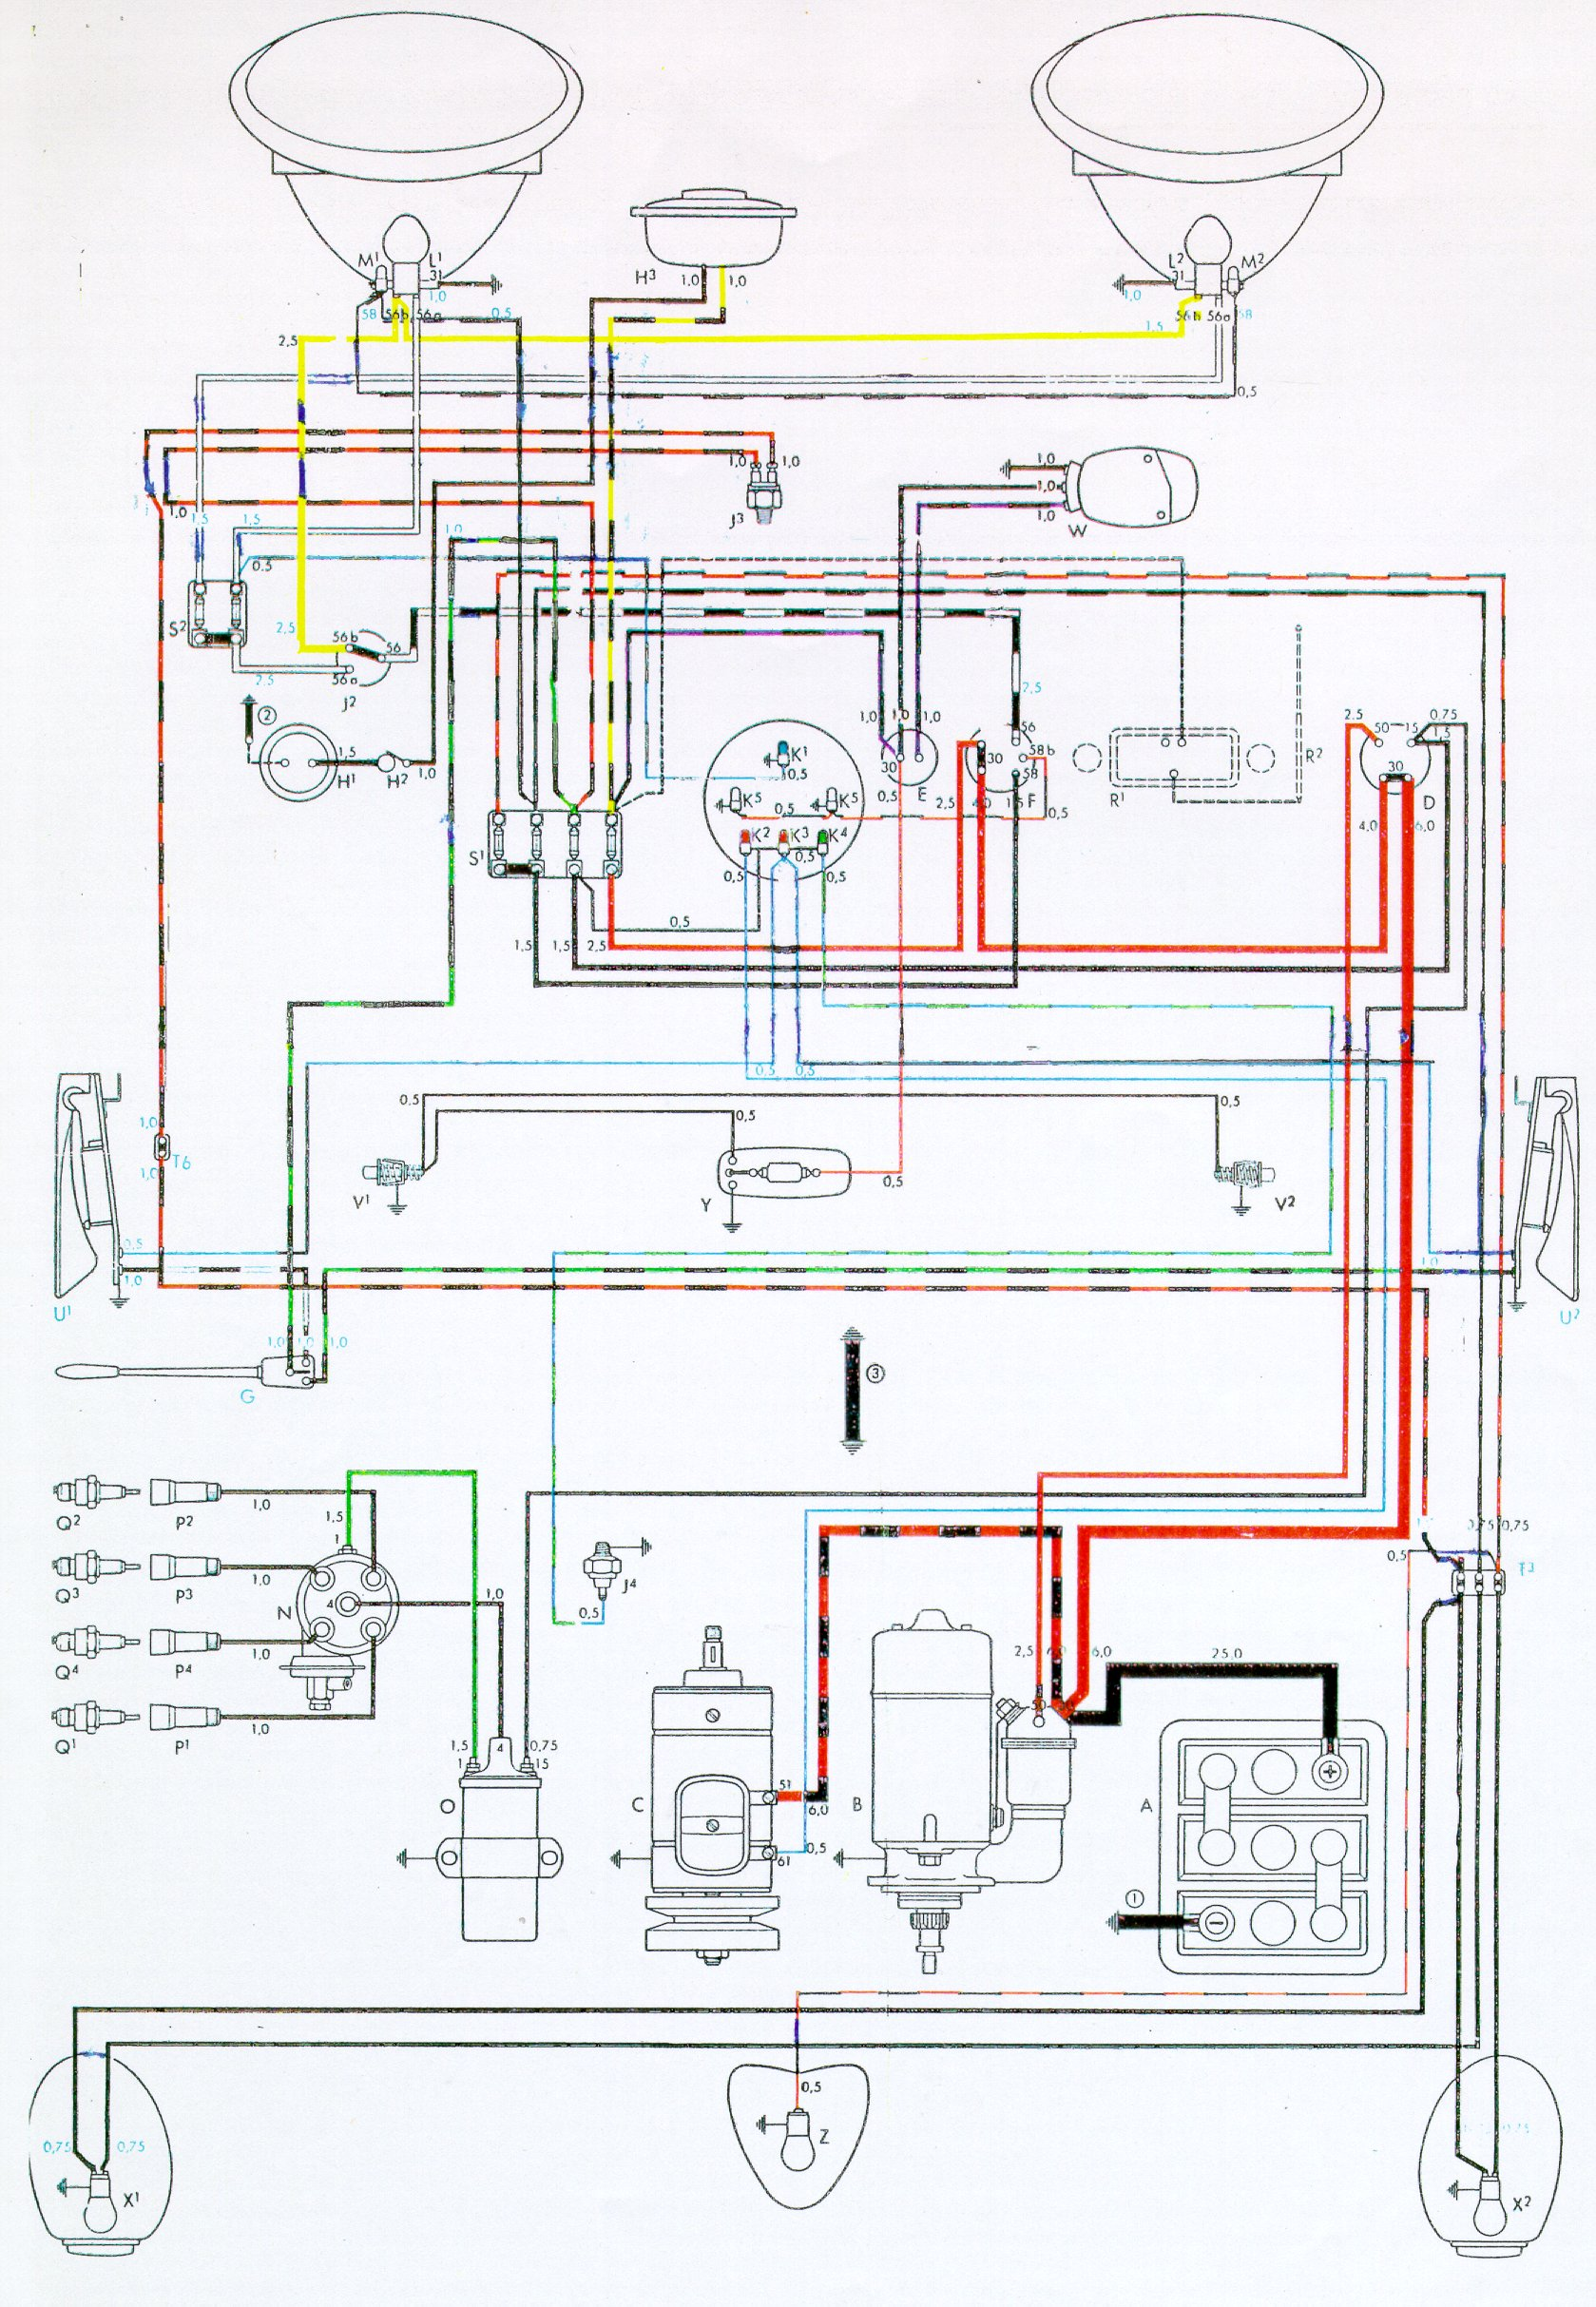 1975 Vw Beetle Wiring Diagram Another Blog About Diagrams Rh Volkspower Nl Bug Alternator